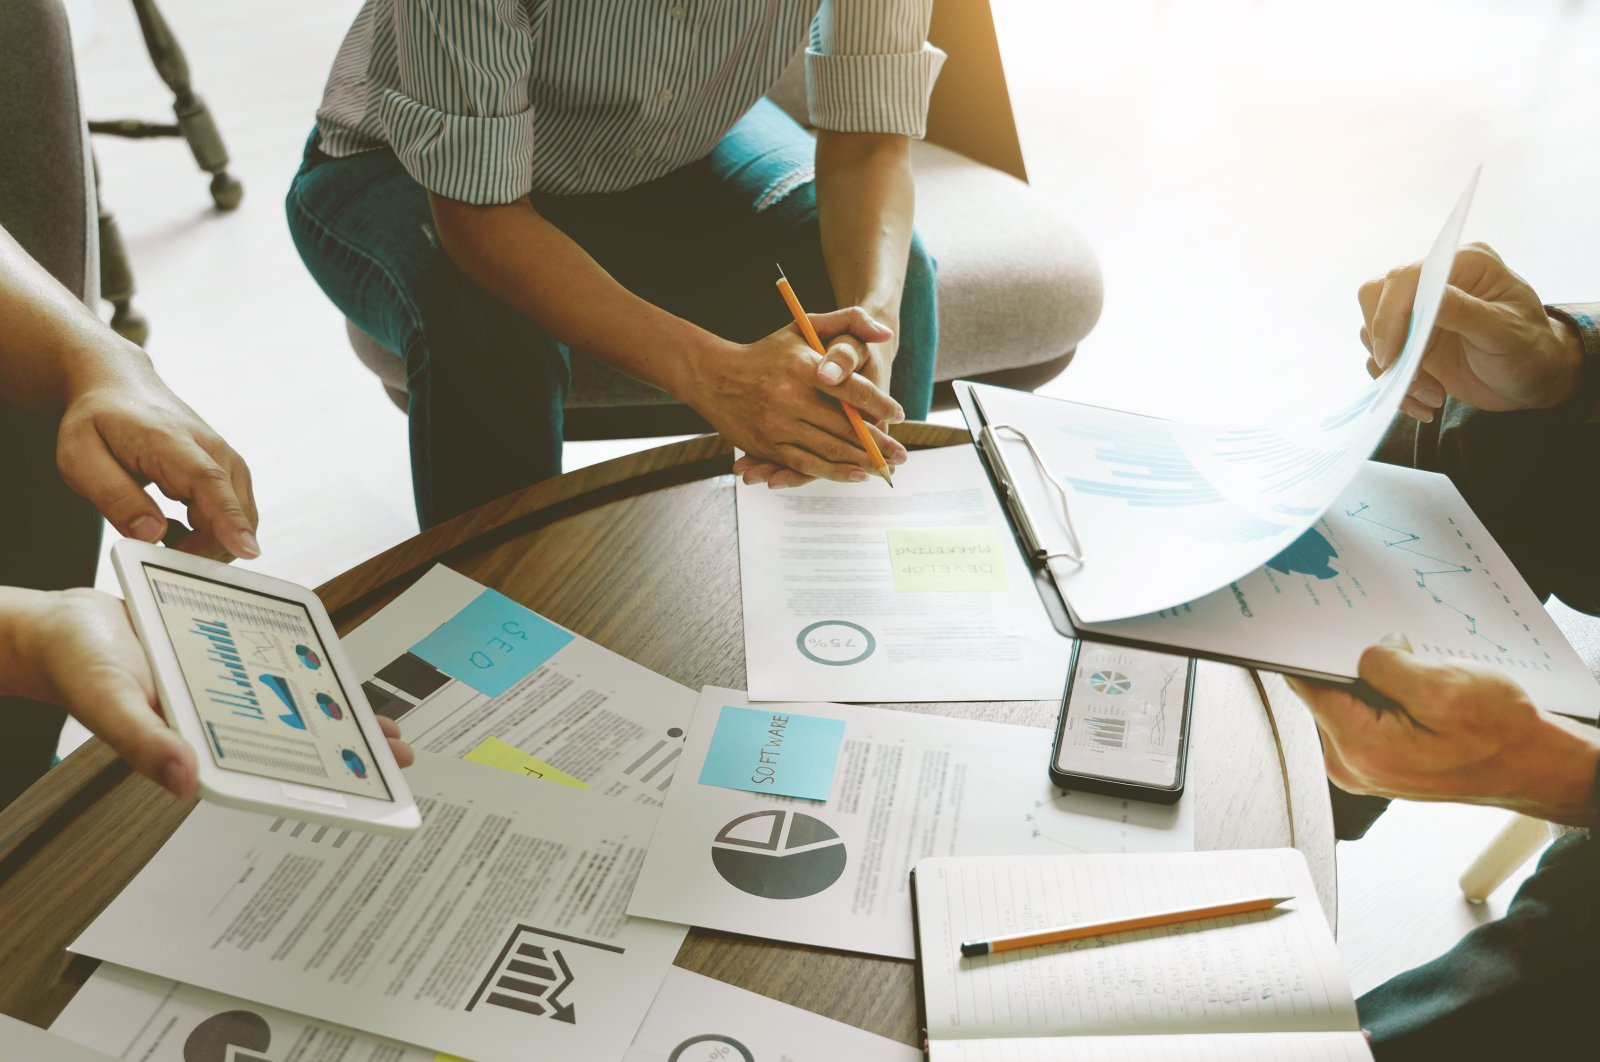 Around 161 investors have made investments in the Turkish startup ecosystem in the January-April period of this year, data showed. (Shutterstock Photo)